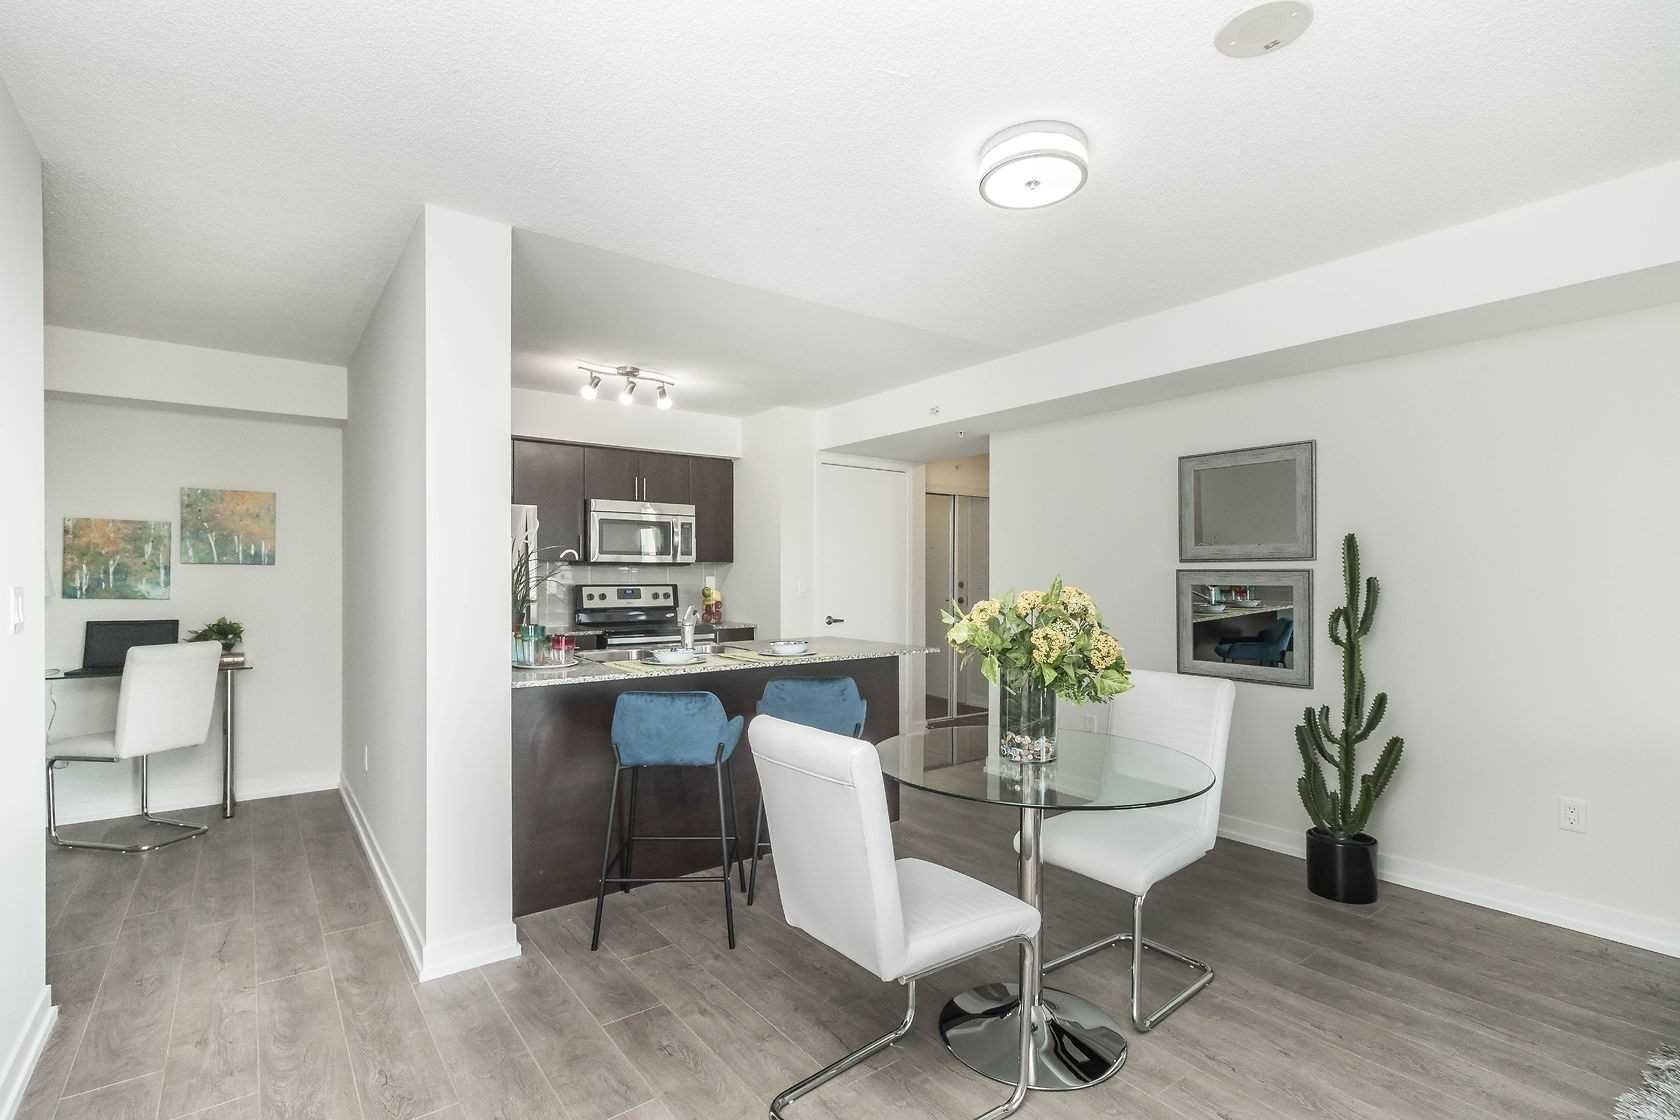 1410 Dupont St, unit 1505 for sale in Toronto - image #2